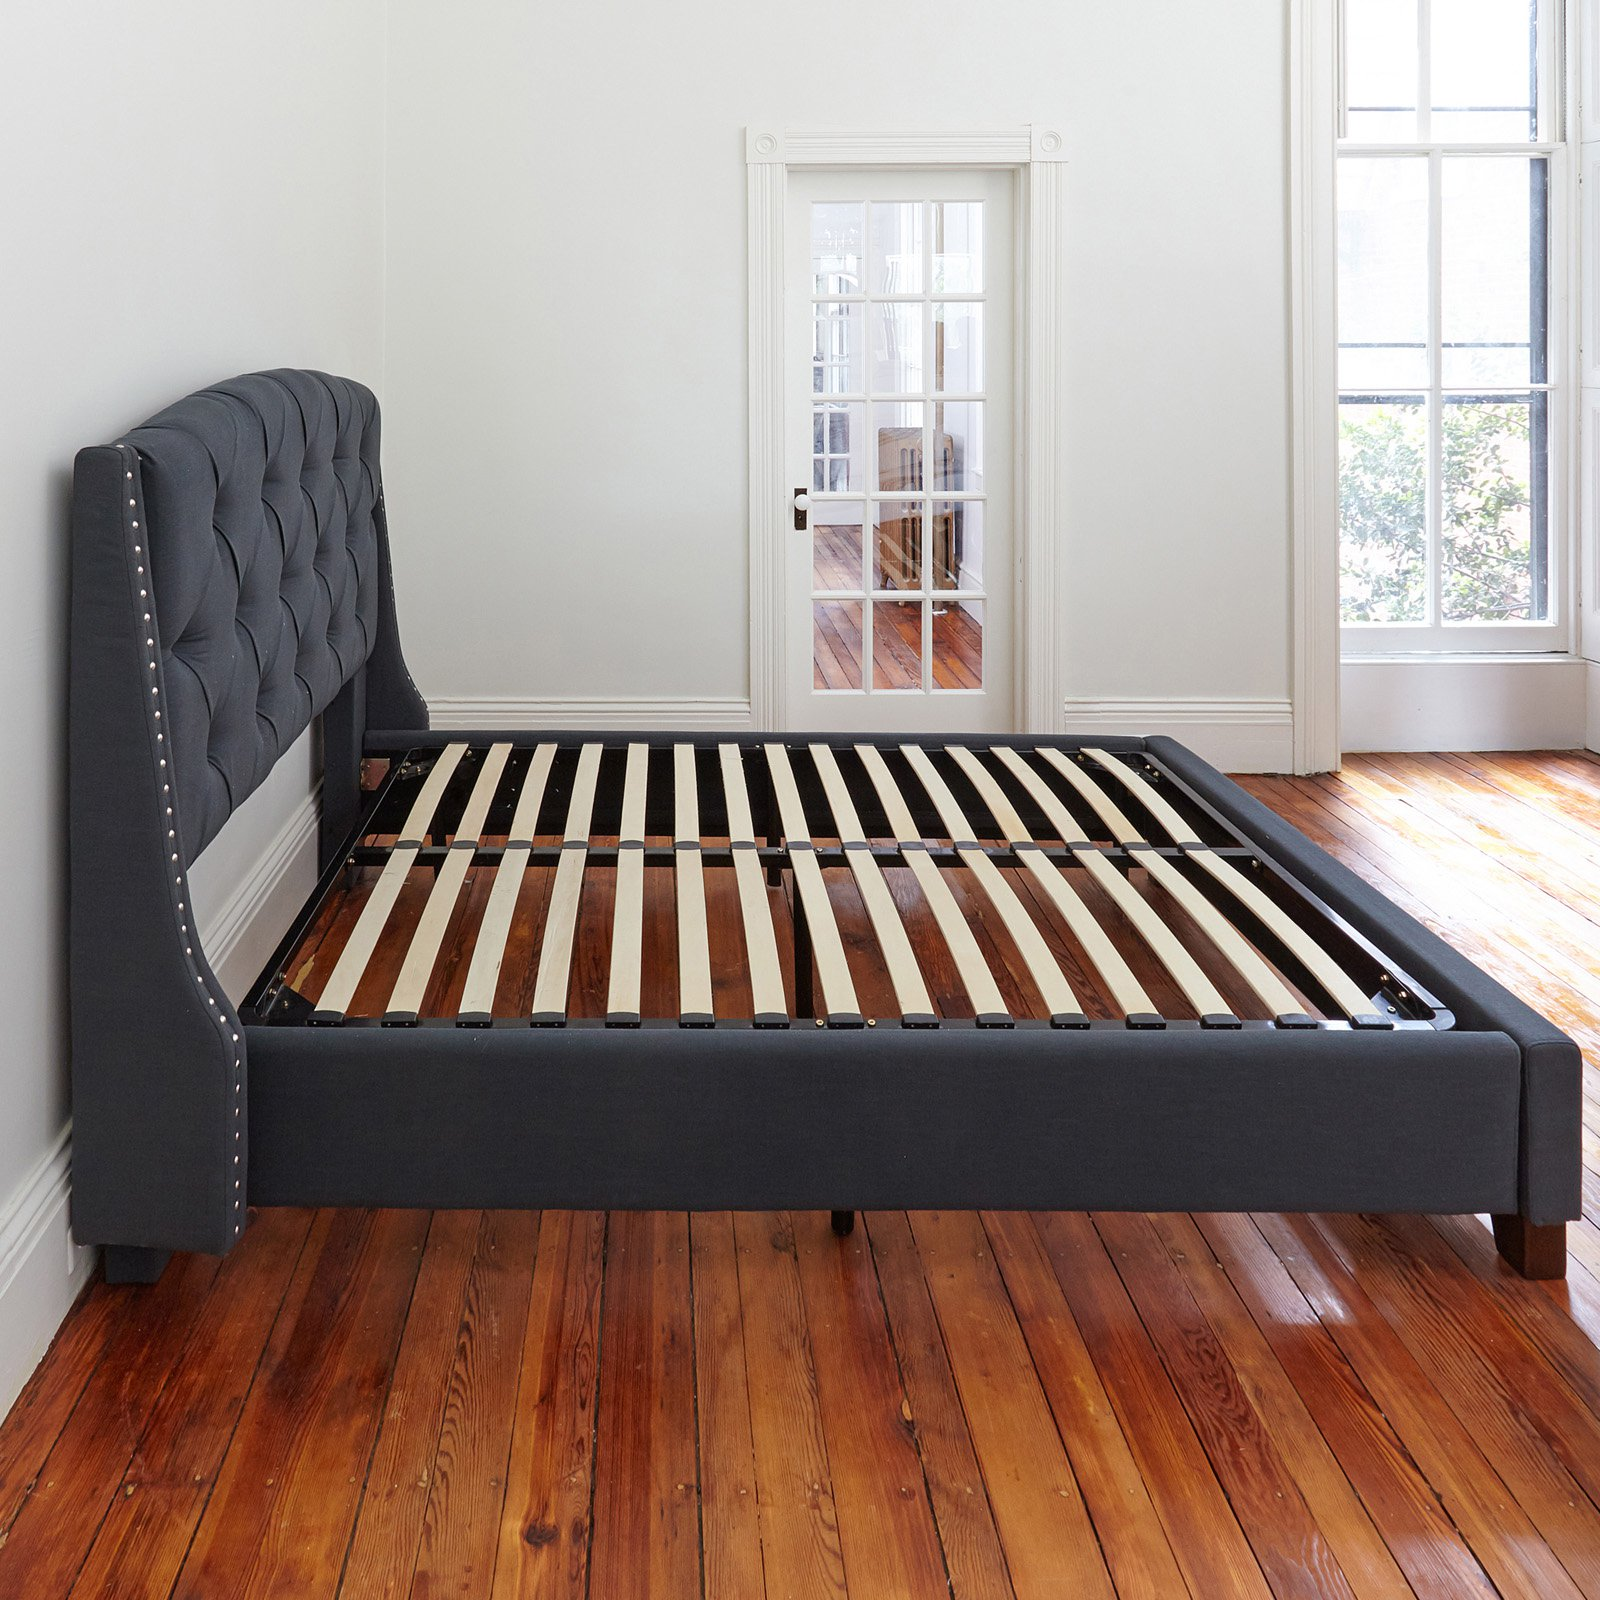 Classic Brands Europa Wood Slat and Metal Platform Bed Frame by Classic Brands